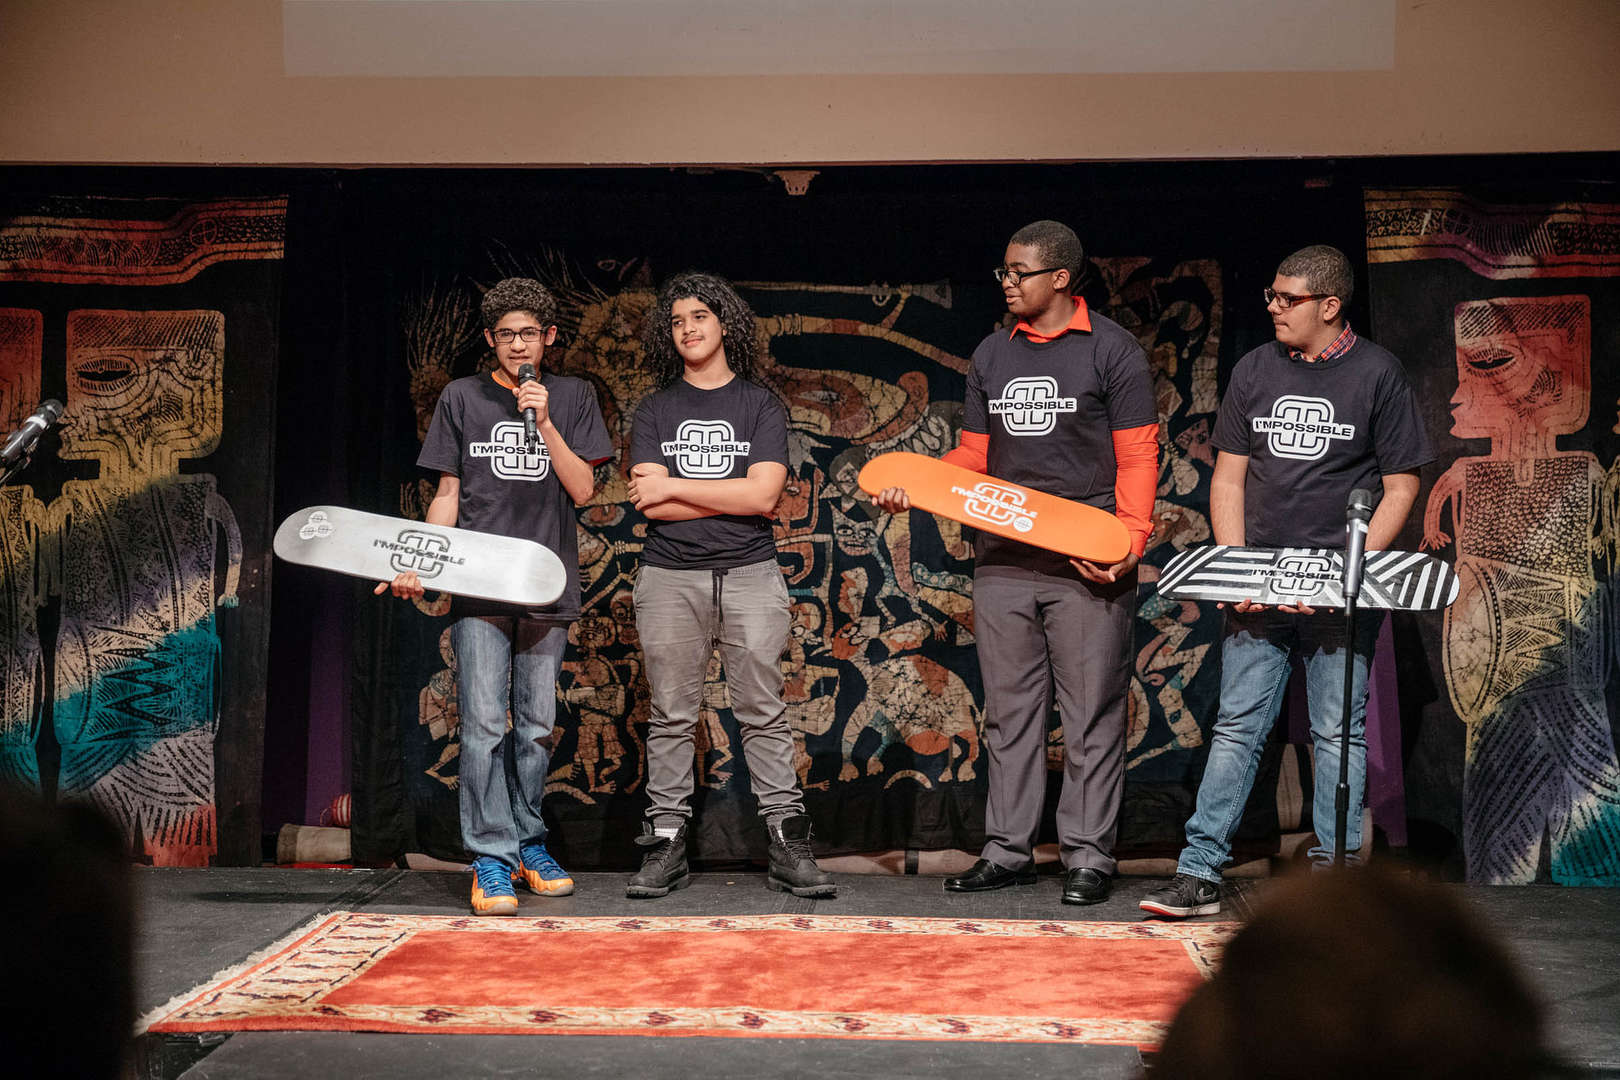 Students holding skateboards speak on stage